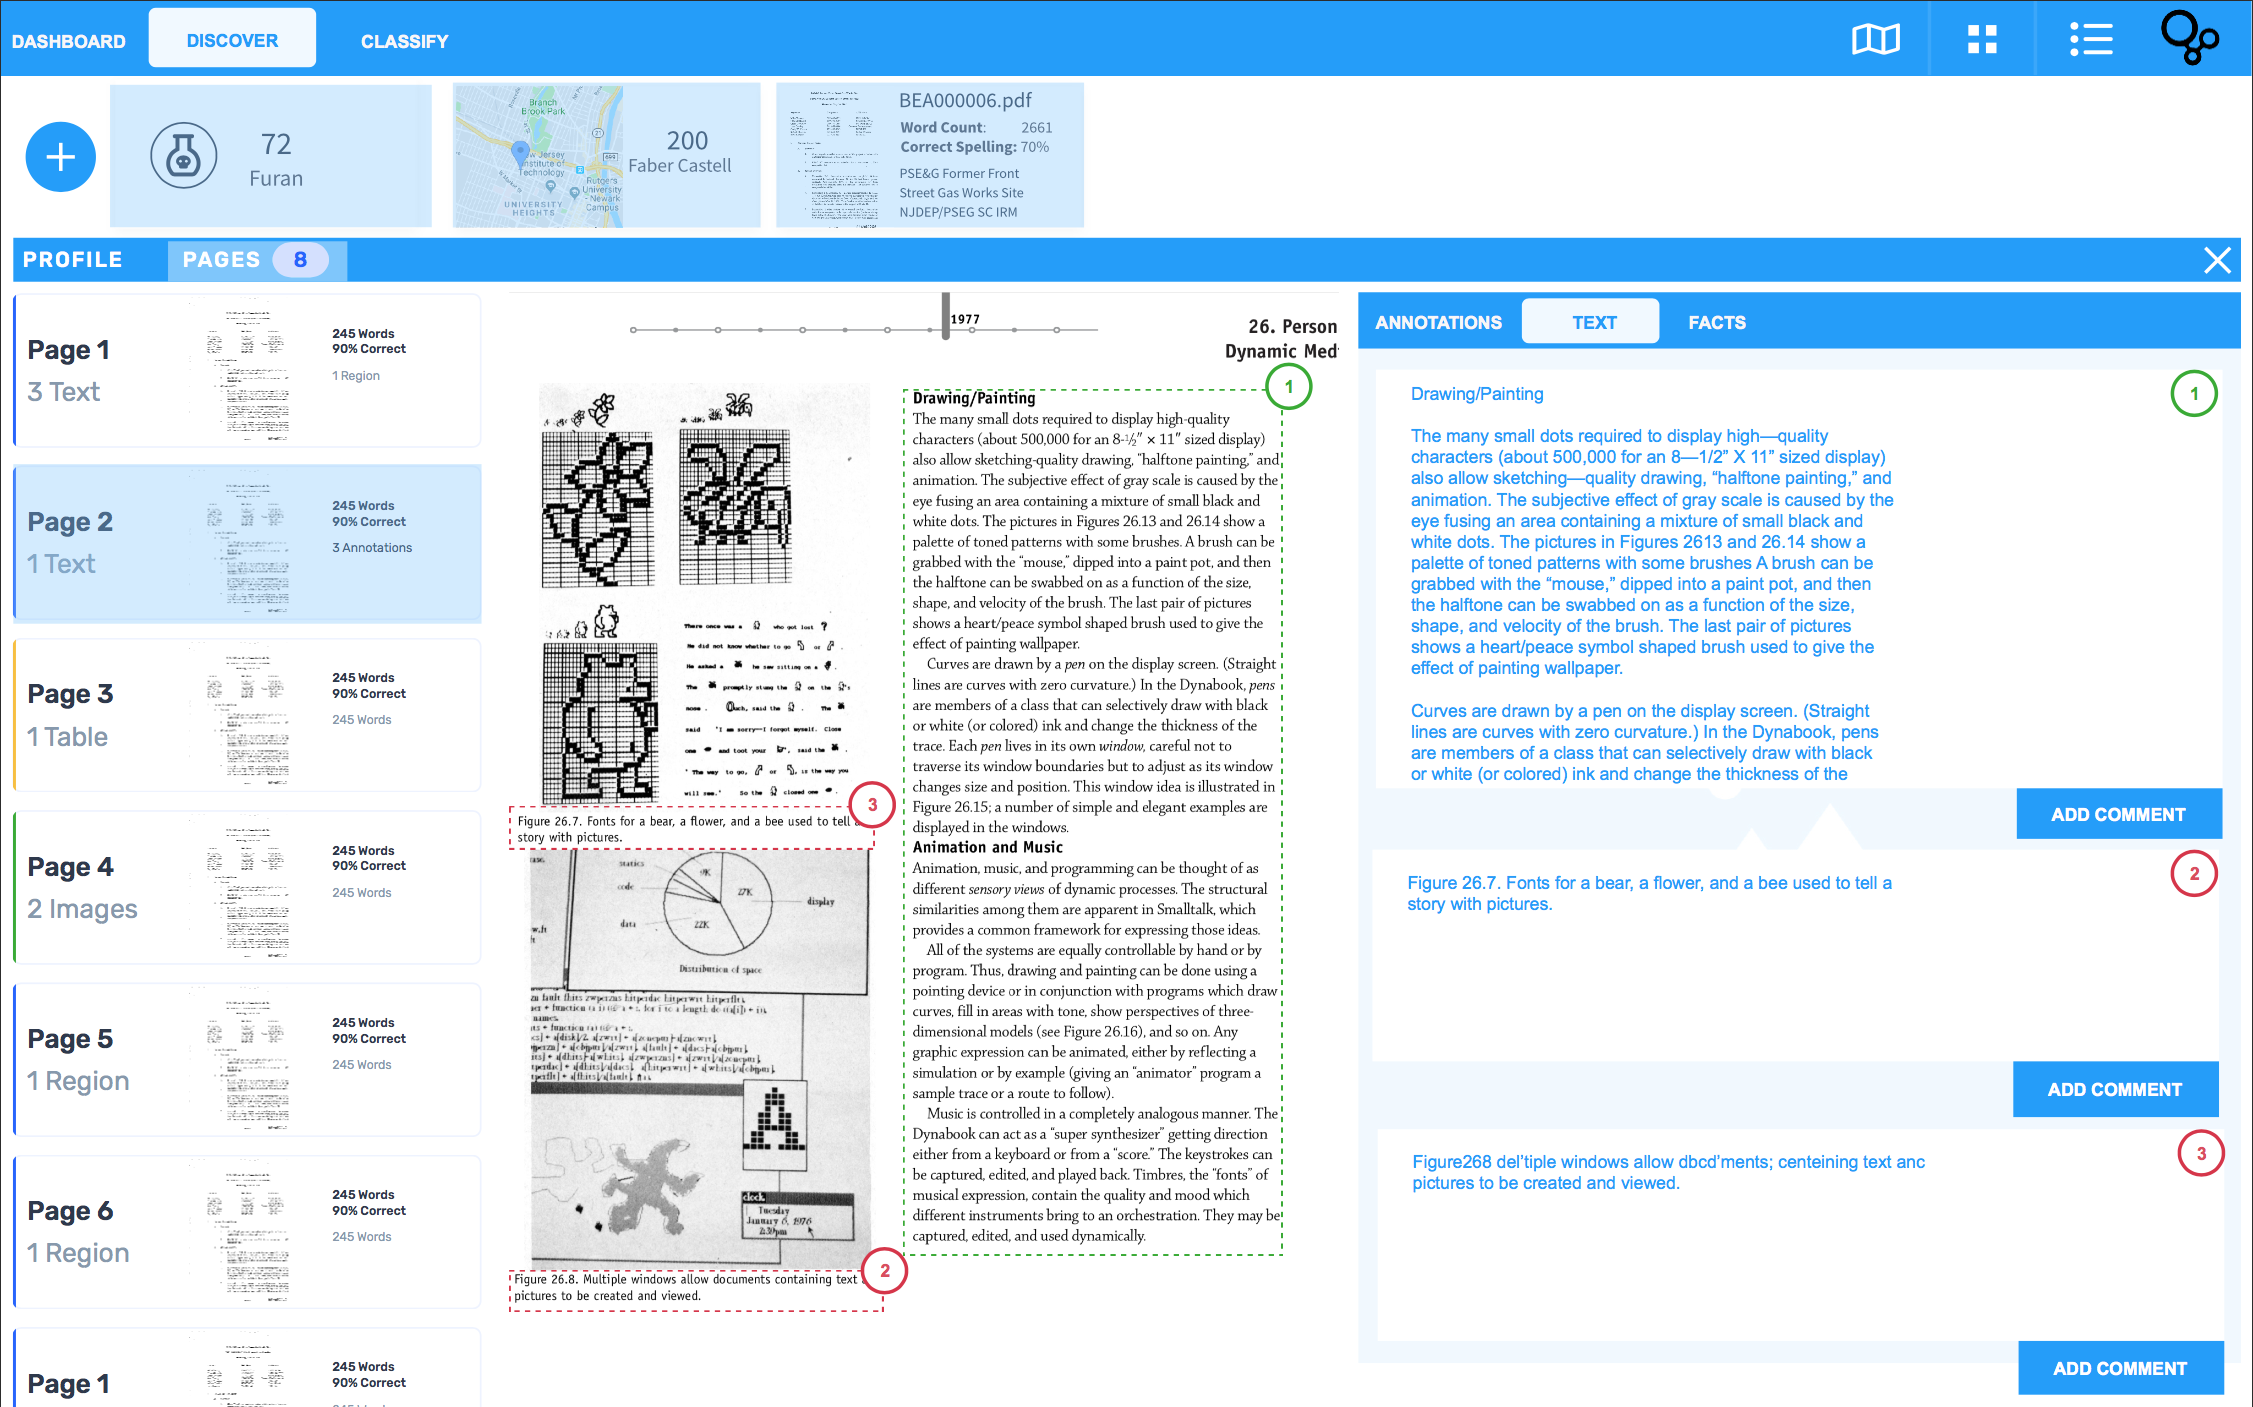 Knowledge Page